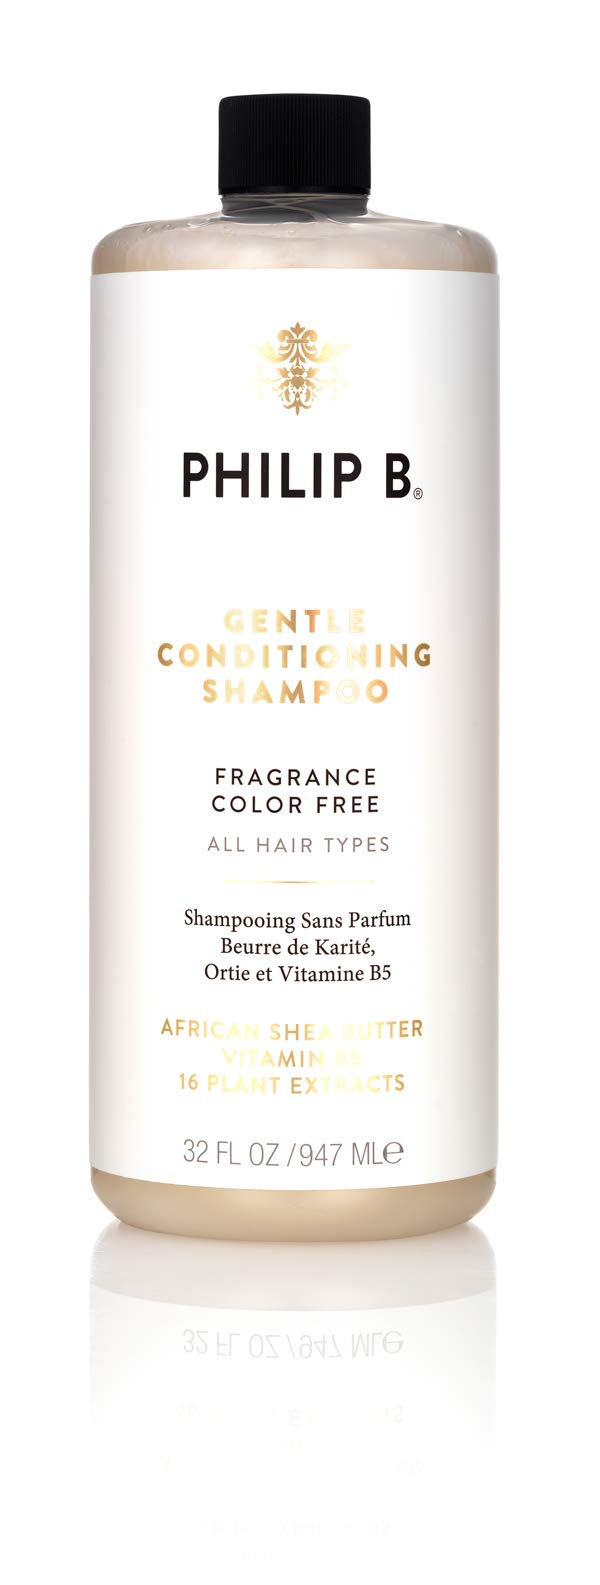 Philip B Gentle Conditioning Shampoo (32 Ounces) by PHILIP B.